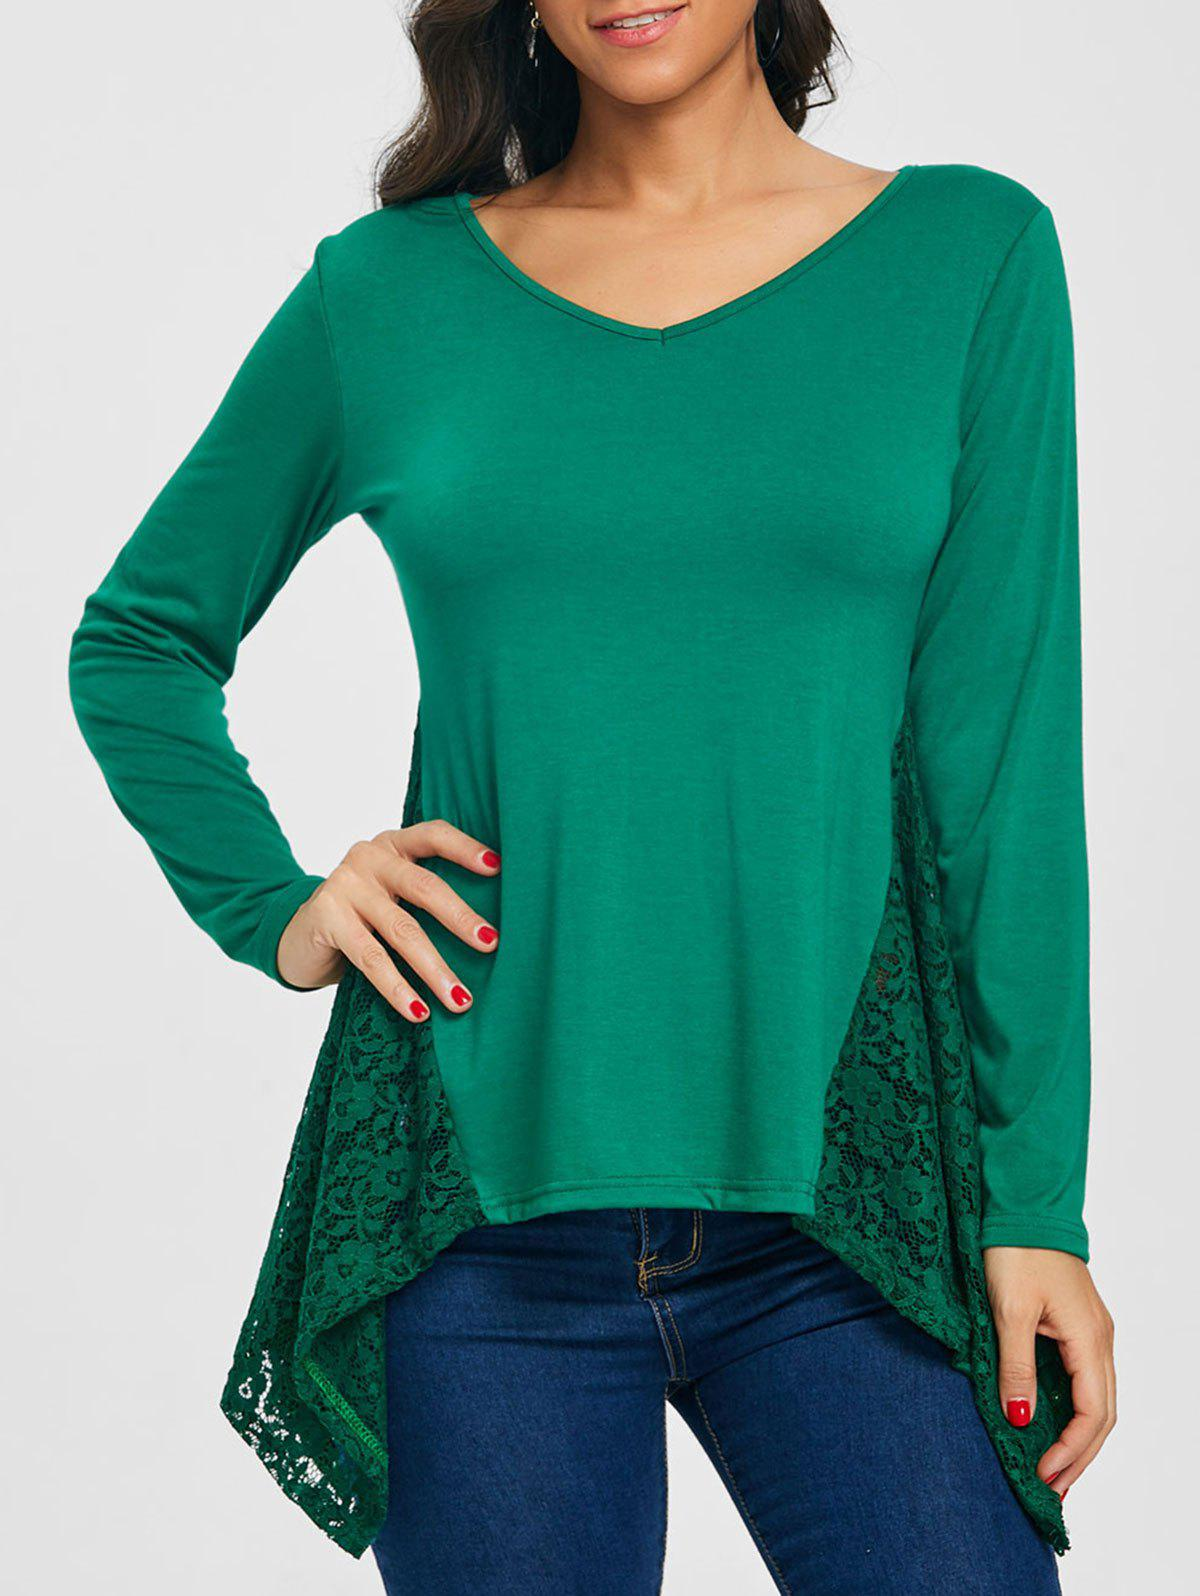 Asymmetric V Neck Lace Panel Tunic T-shirt - BLACKISH GREEN 2XL